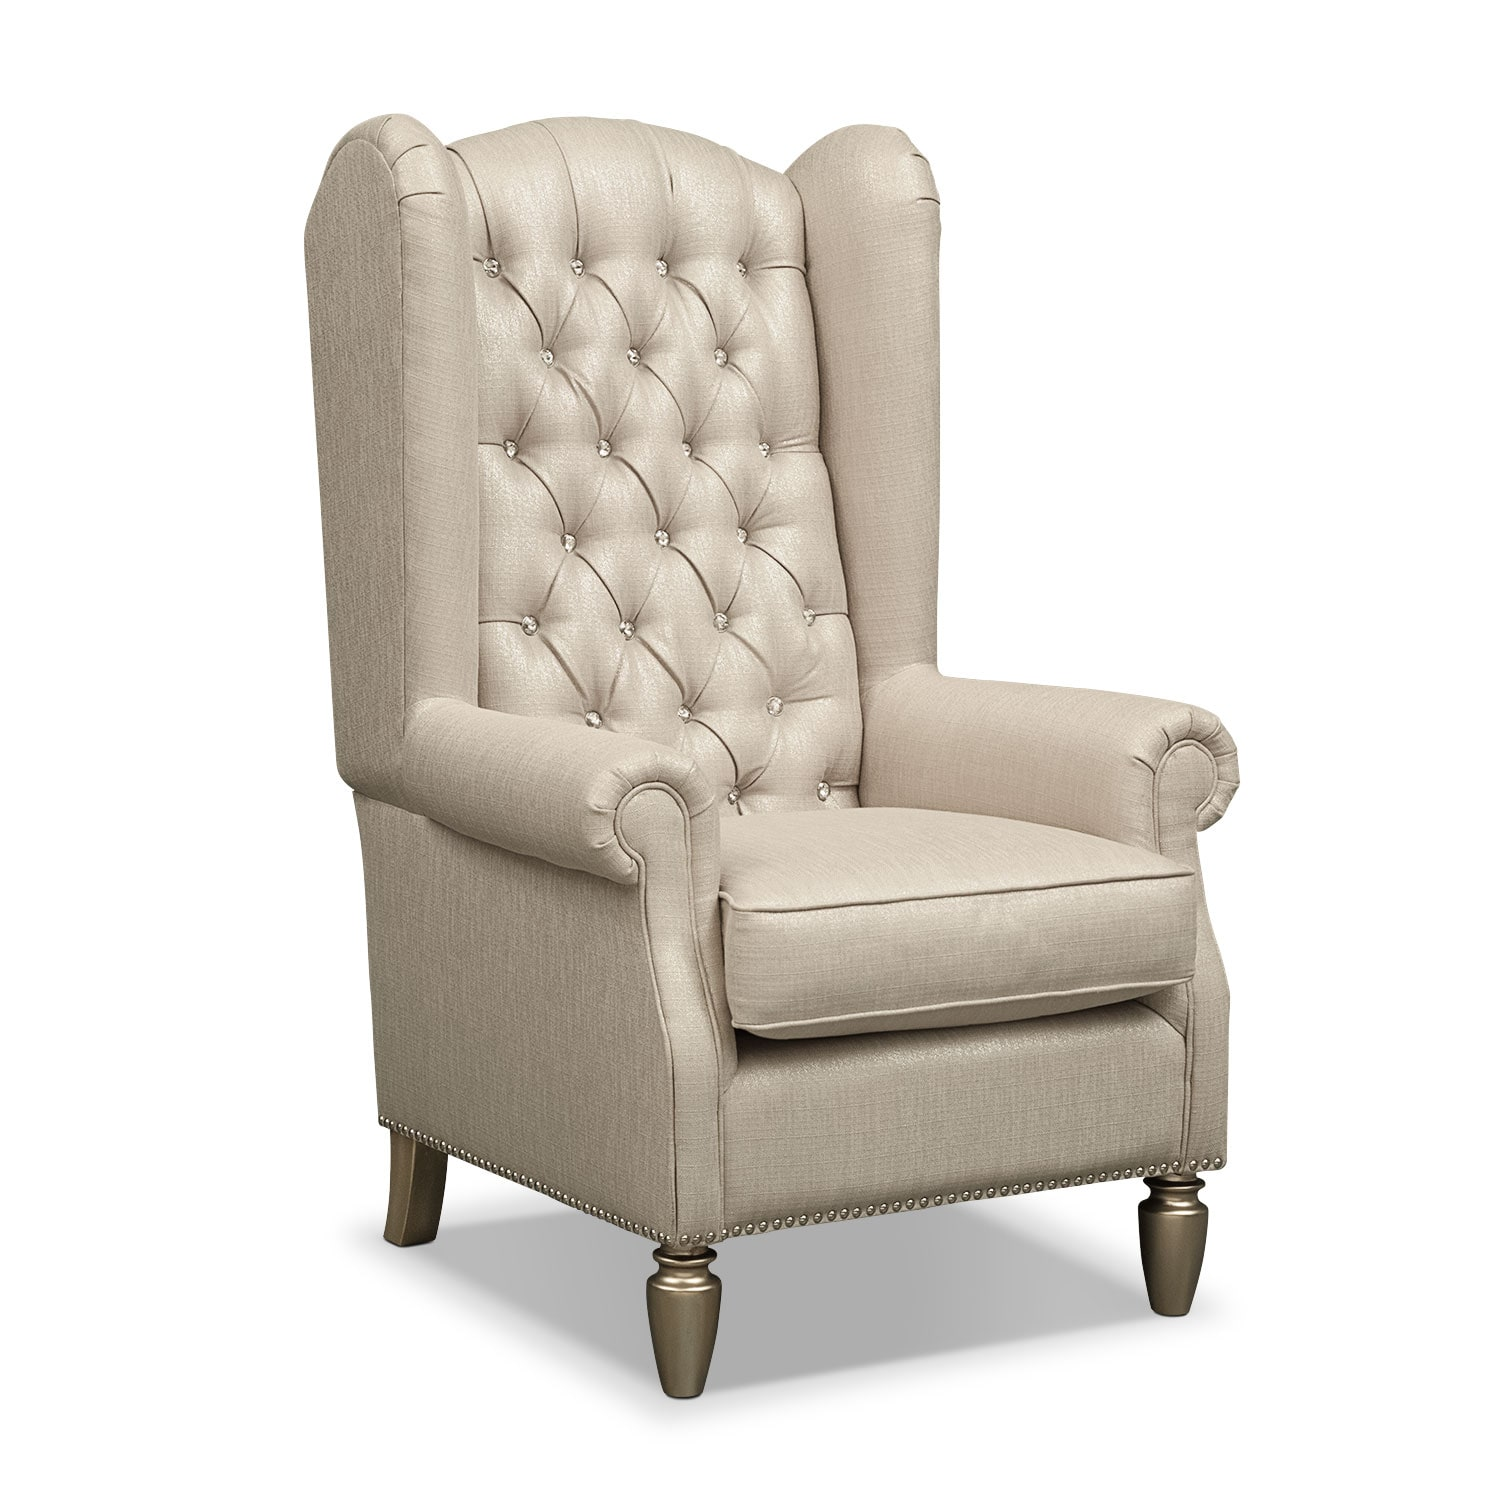 Bedroom Furniture - Cleo Accent Chair - Platinum